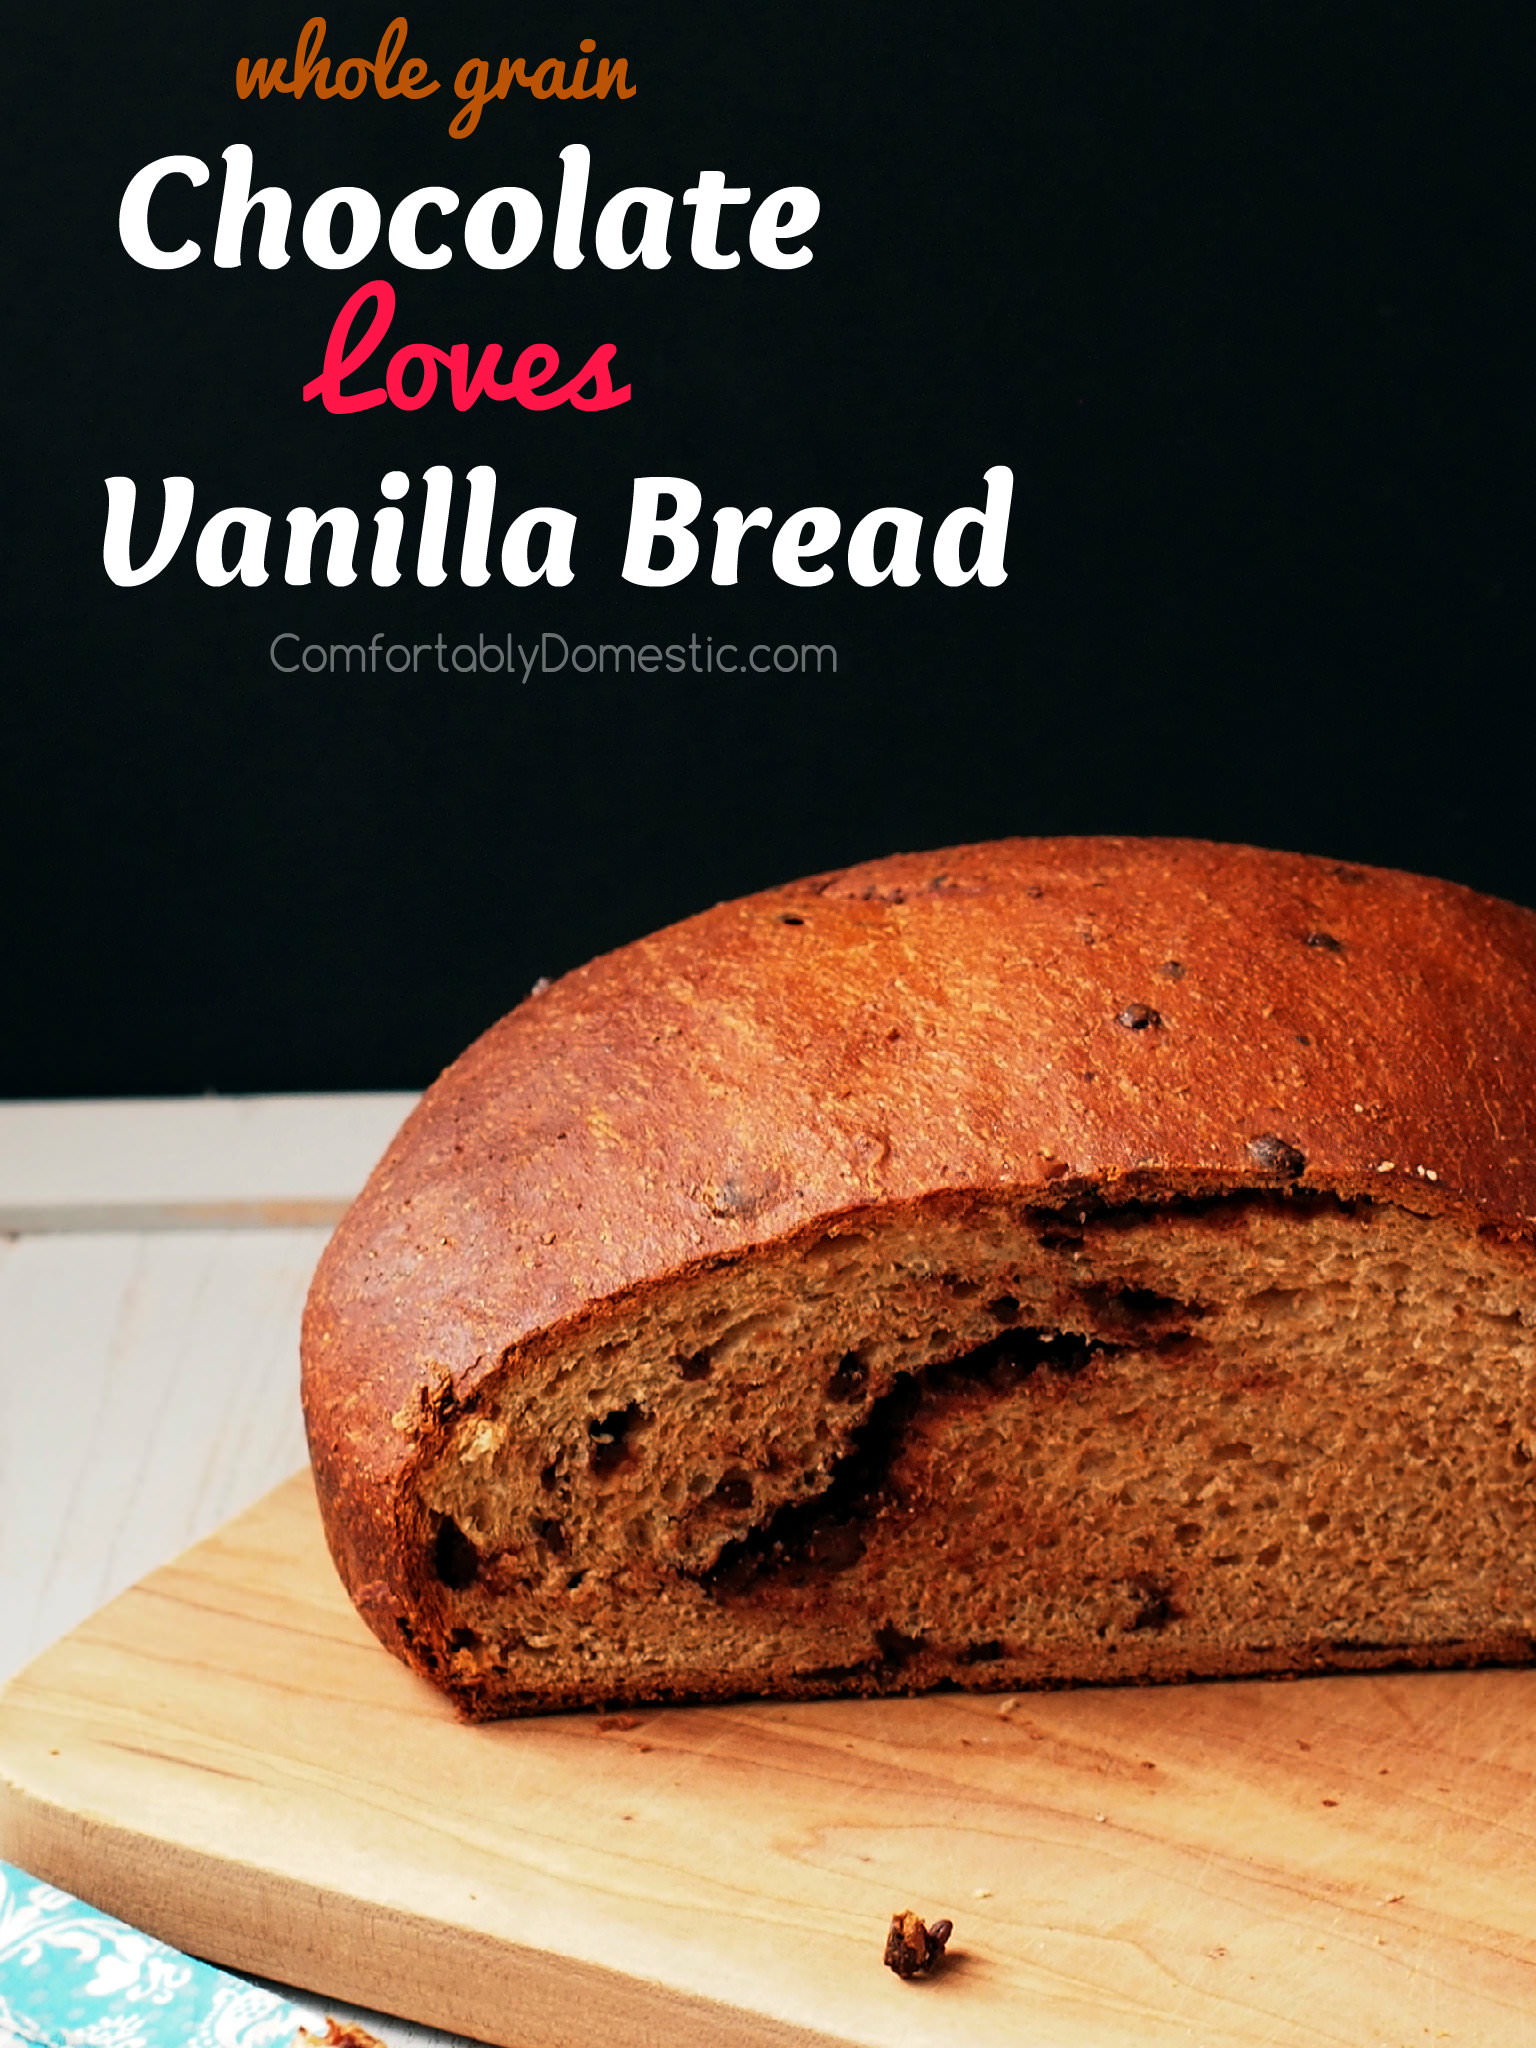 Chocolate loves vanilla, especially in this sweet bread! Sweet, vanilla-infused whole grain sweet dough with a generous helping of chopped chocolate kneaded into tender loaves. | ComfortablyDomestic.com